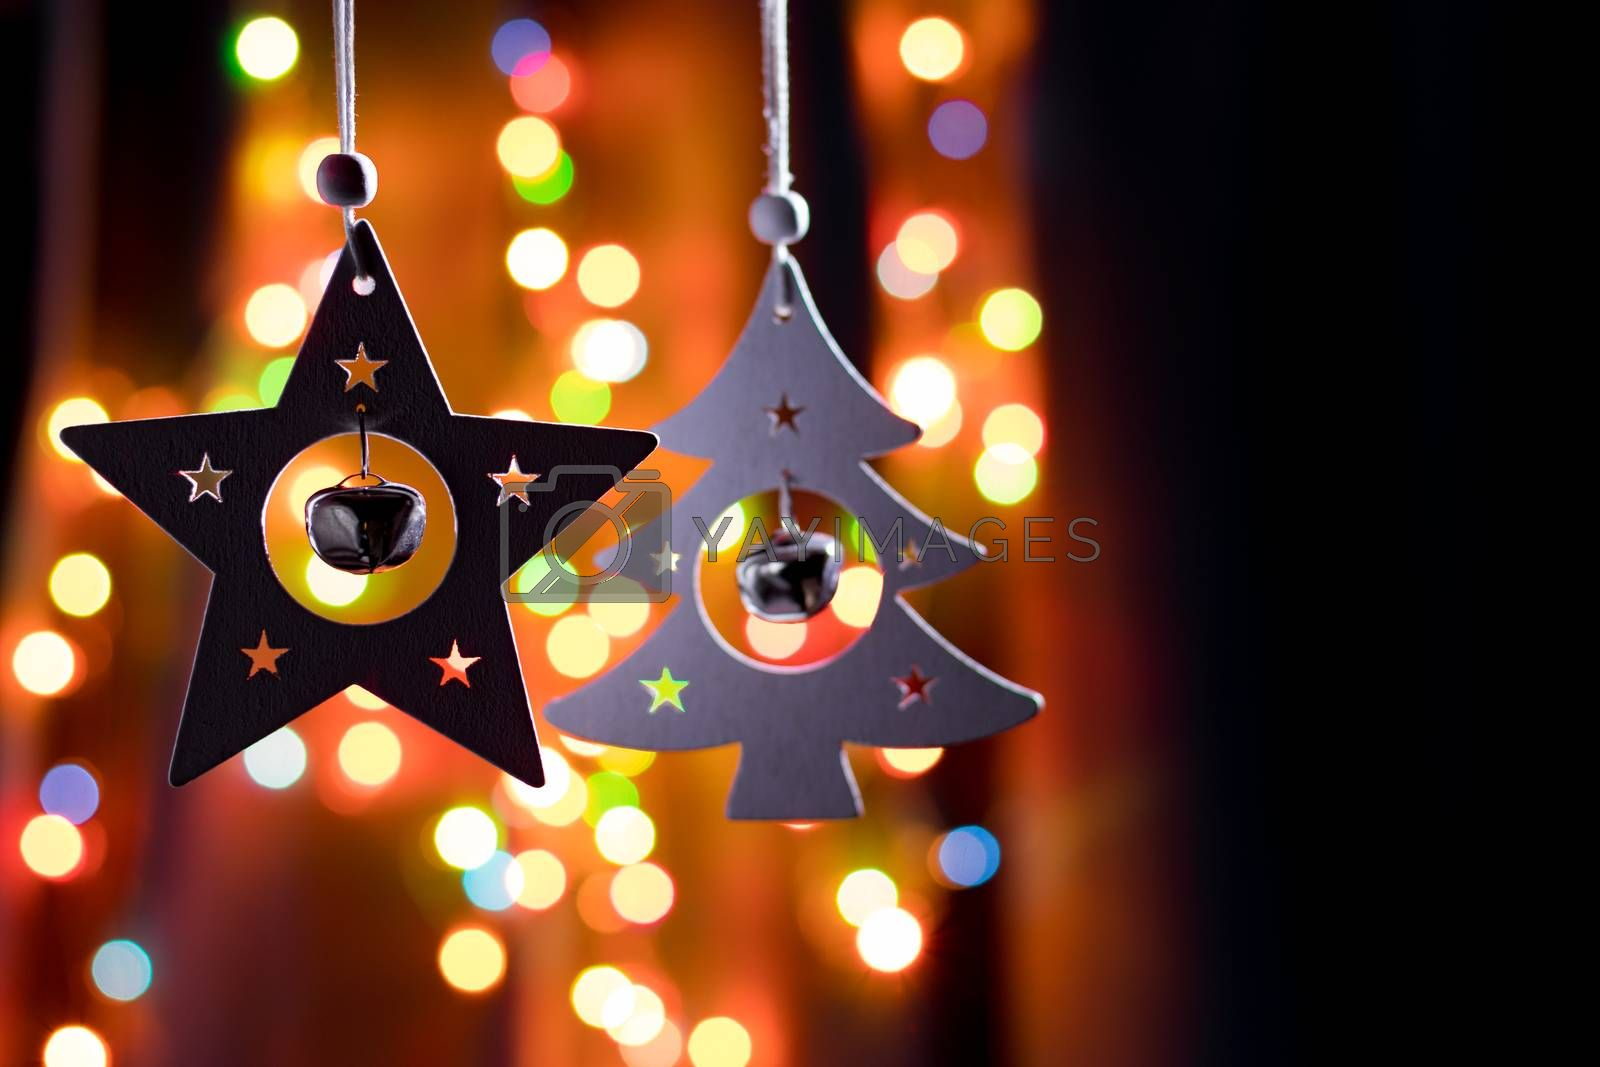 Handmade Christmas Decorations on Blurred Dark Background by clusterx